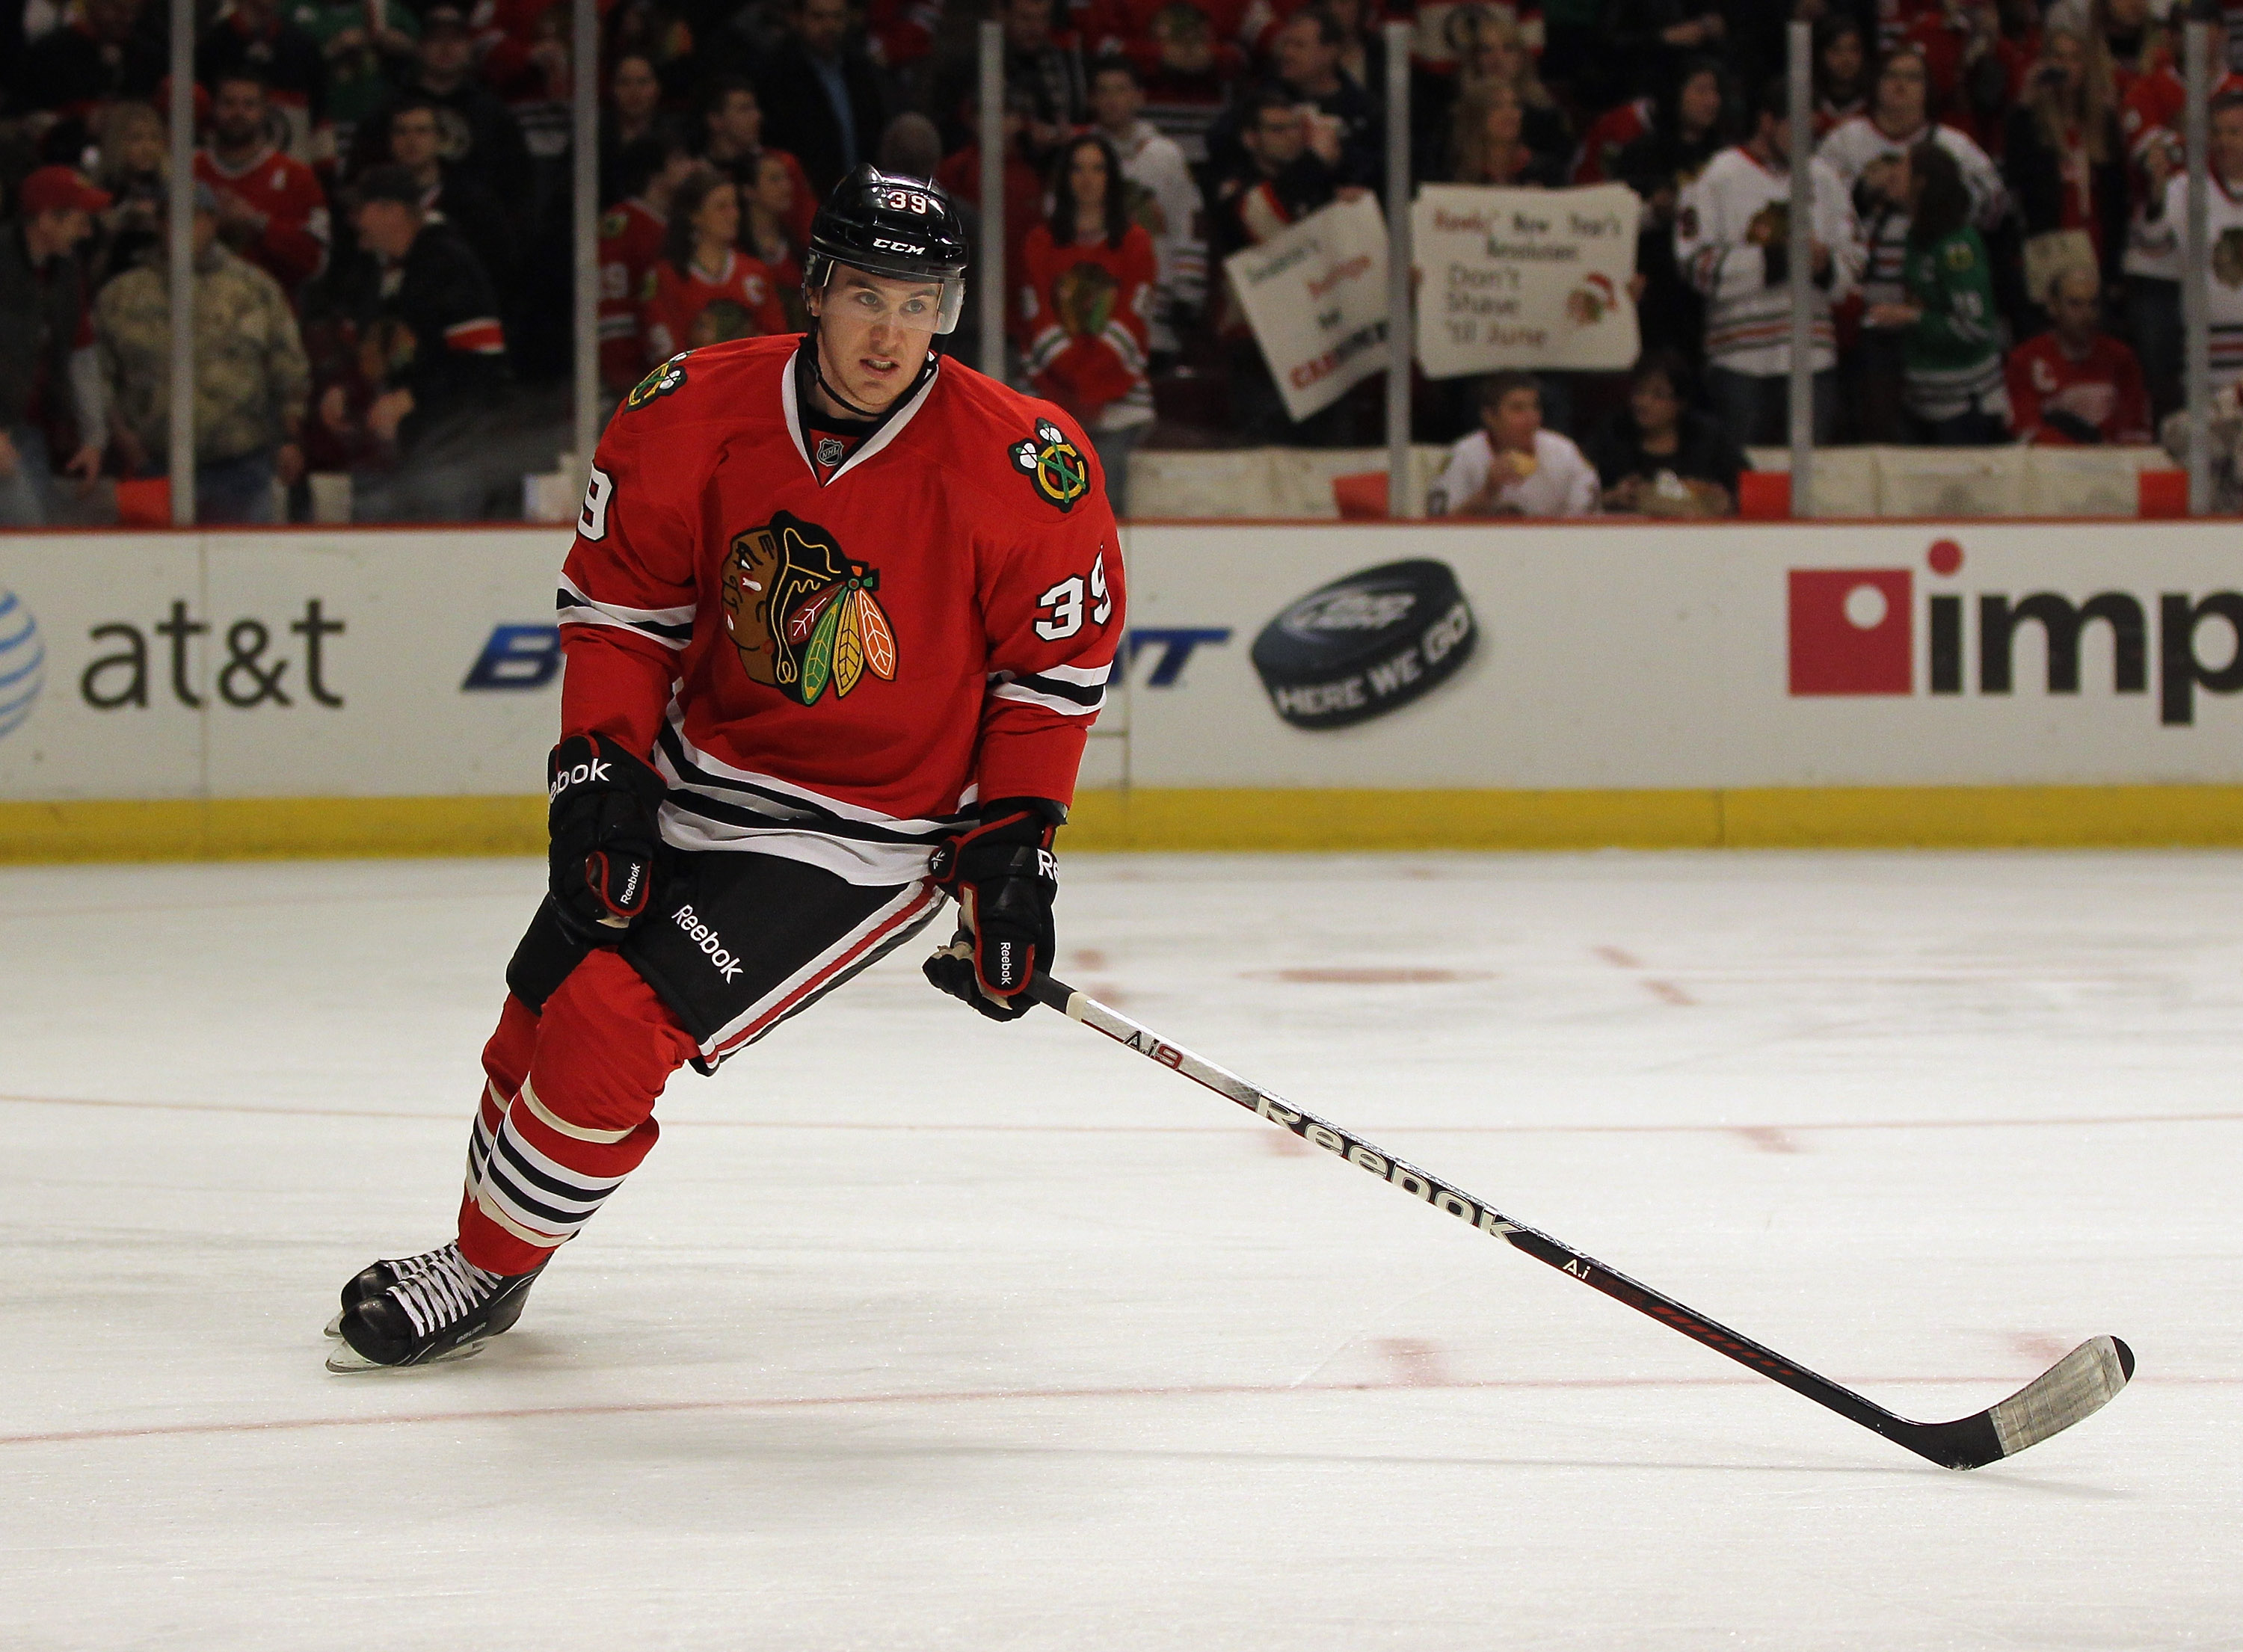 Jimmy Hayes began his seven-year NHL career with the Blackhawks from 2011 to 2013.